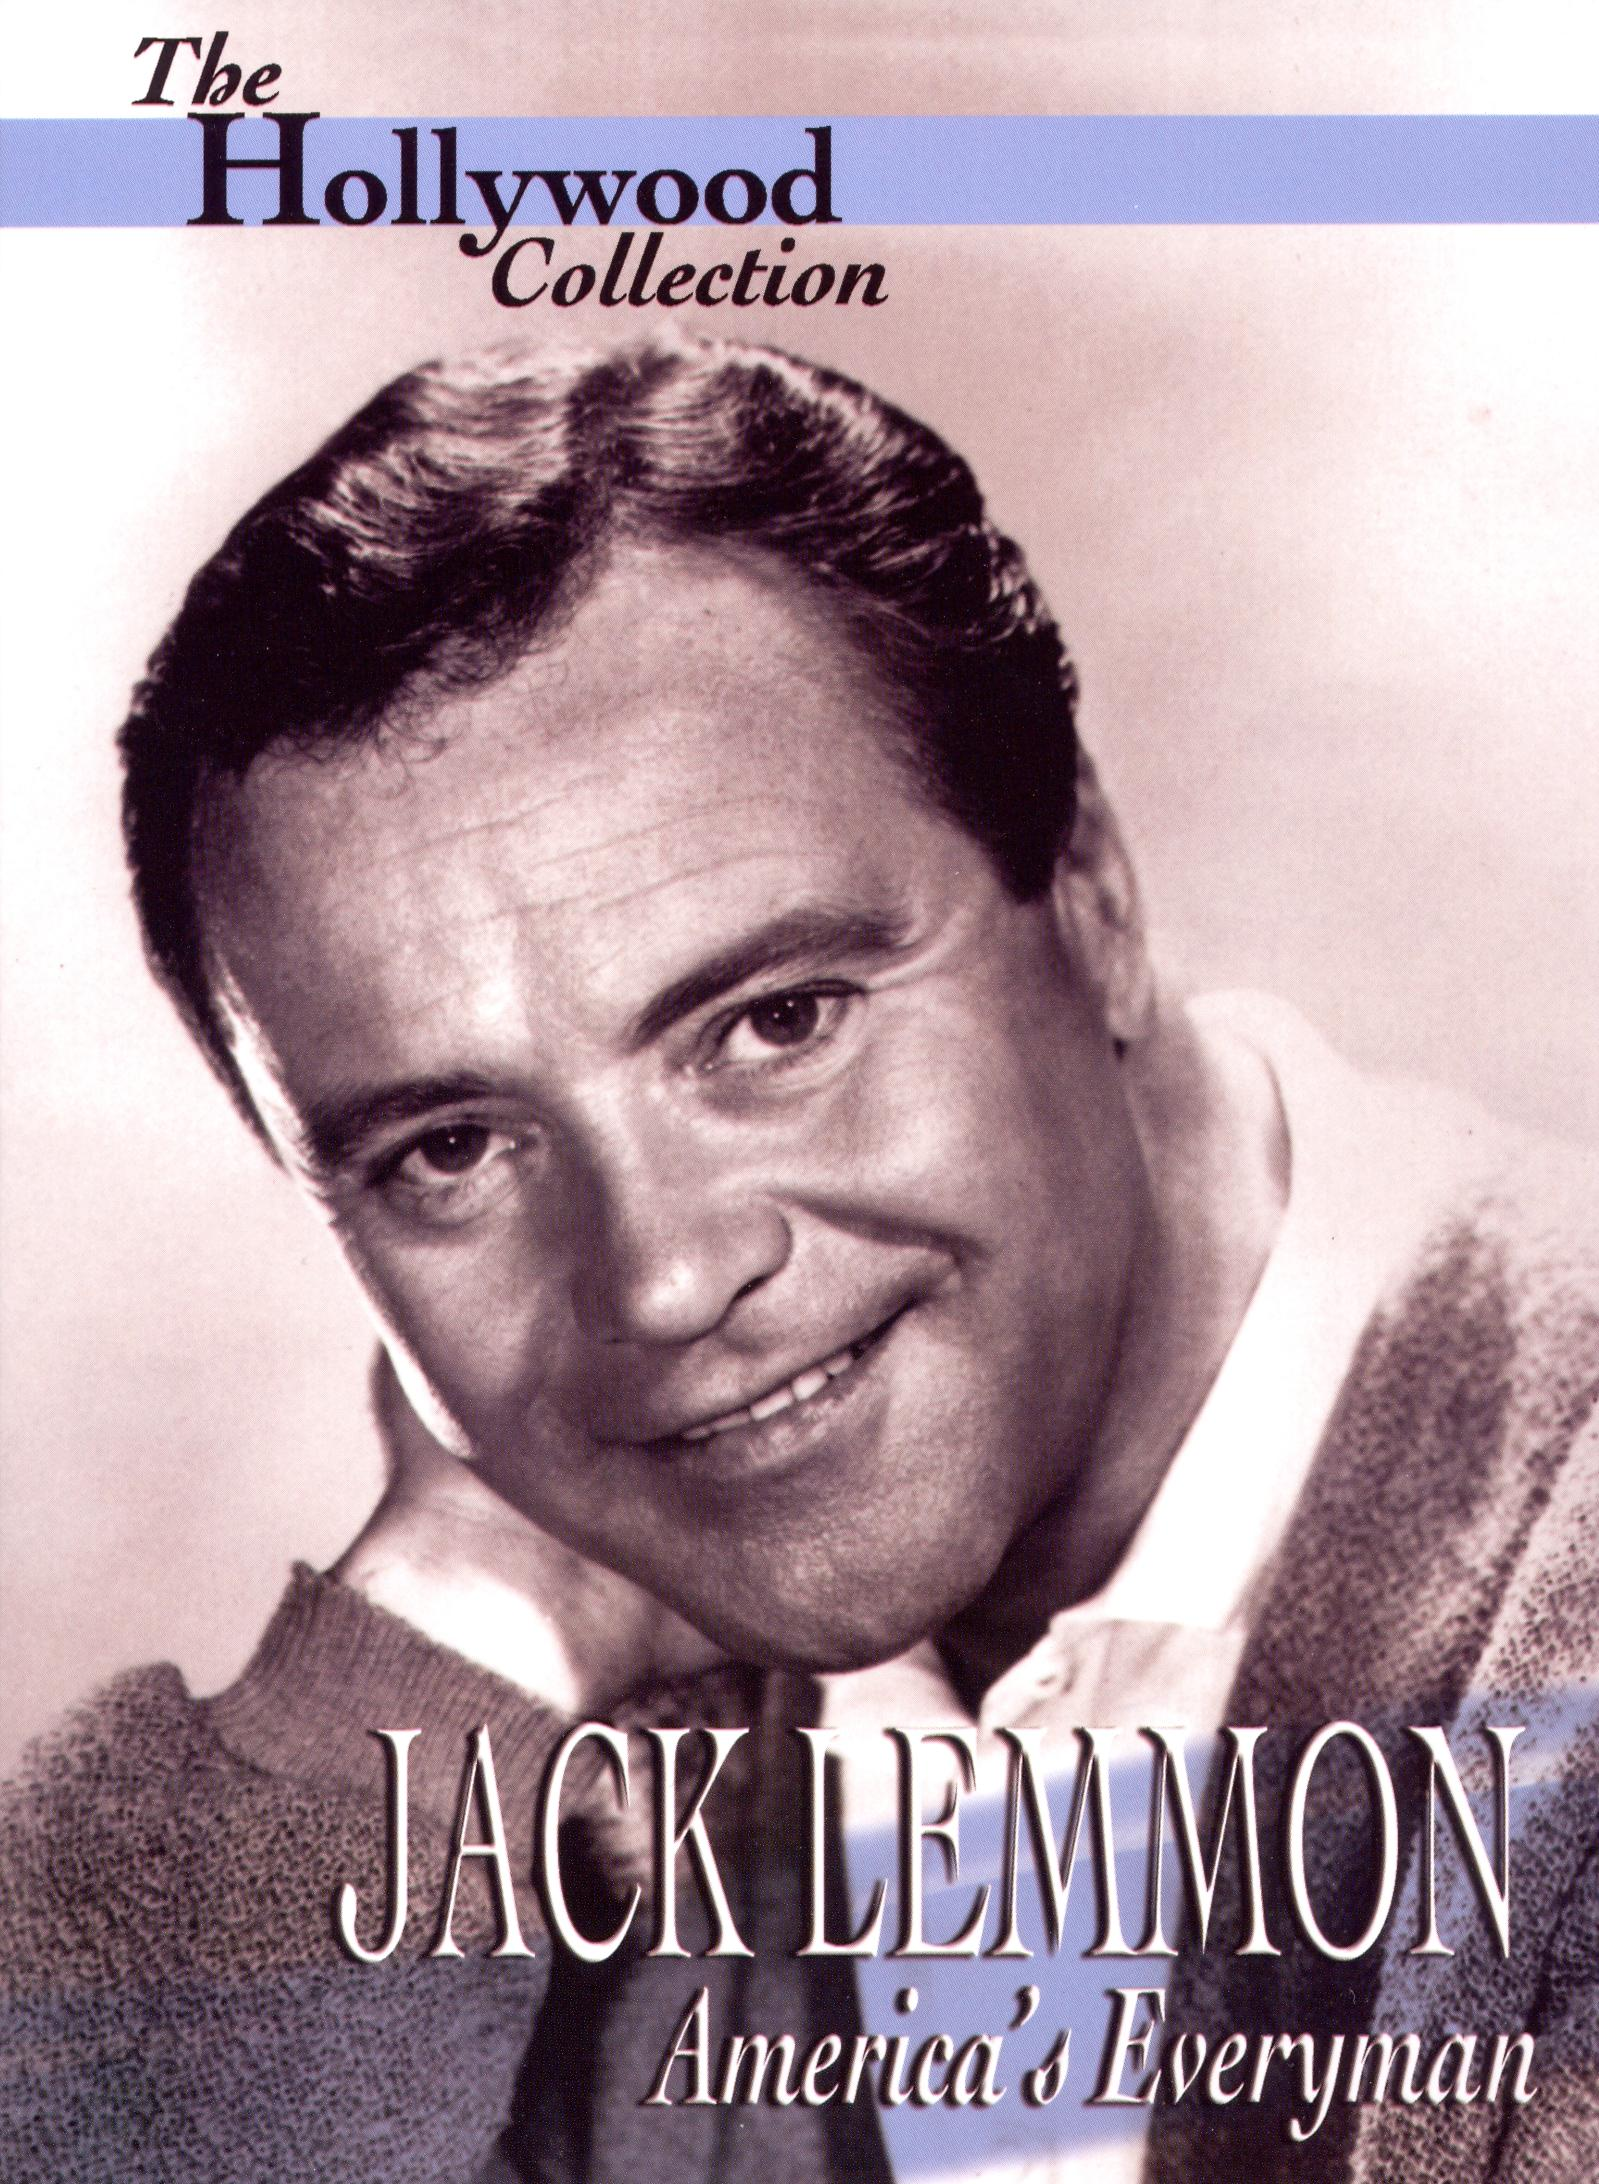 The Hollywood Collection: Jack Lemmon - America's Everyman